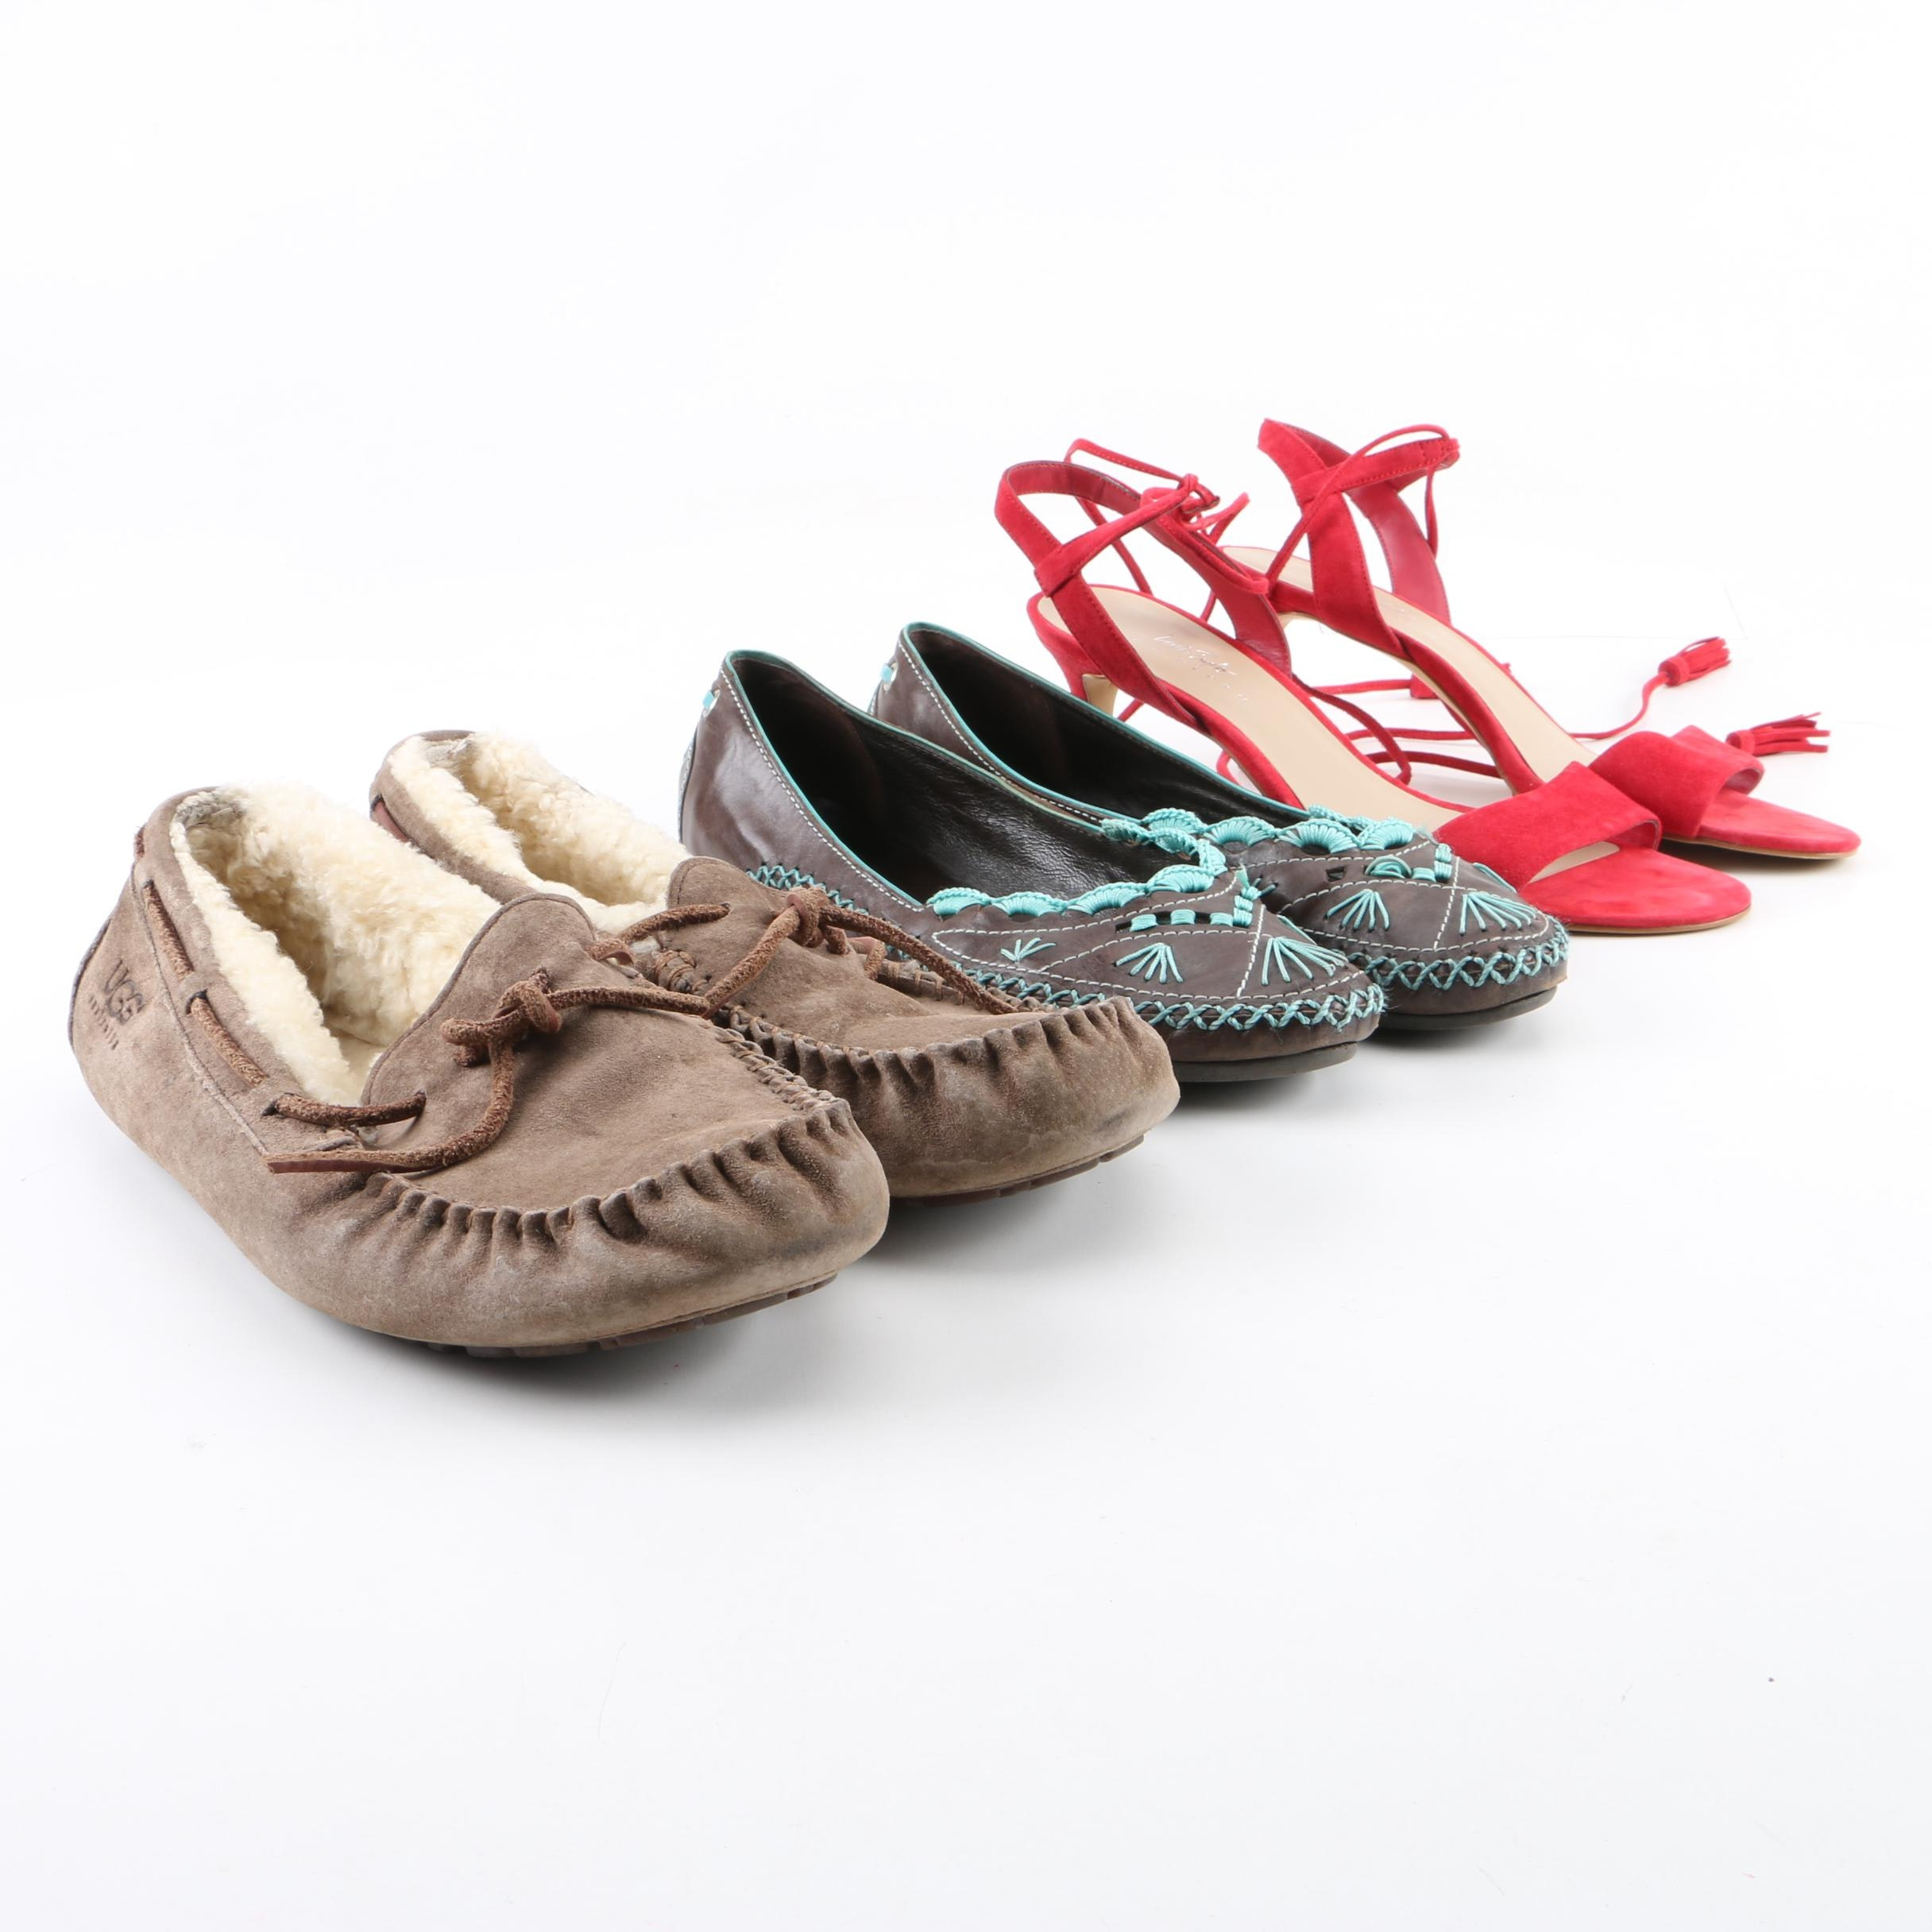 Women's UGG Moccasins, Lord & Taylor Dress Sandals and BCBG Max Azria Flats